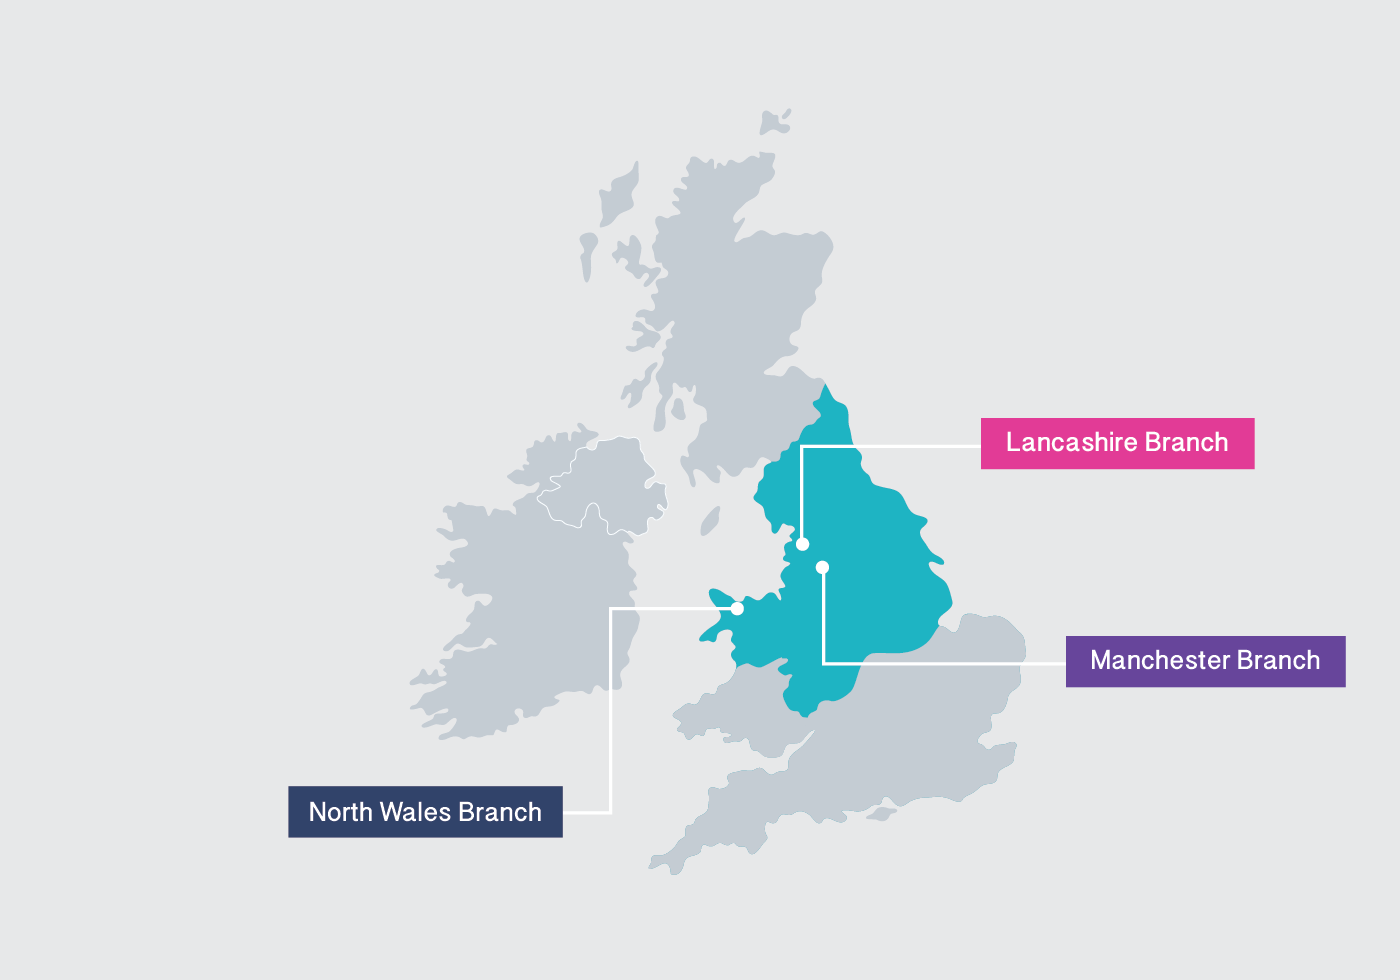 Key Care & Support have 3 branches in the North West of the UK